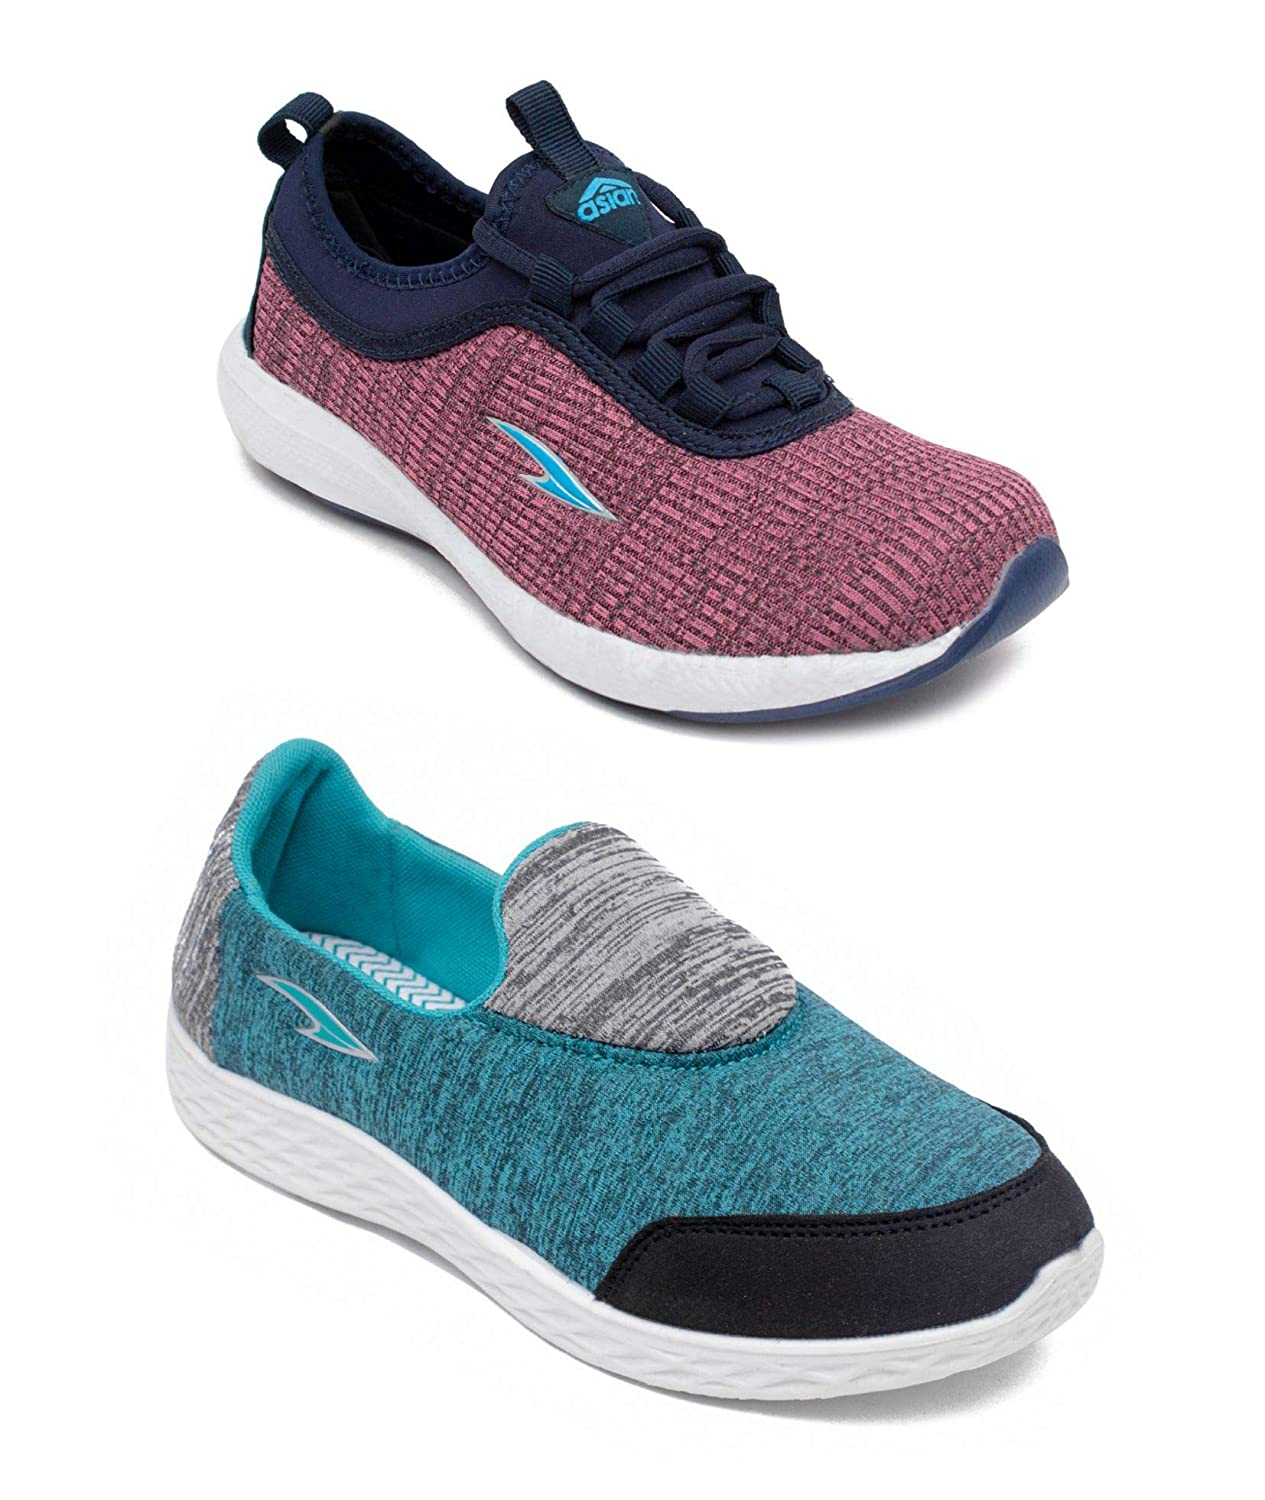 Buy ASIAN Sports Shoes, Gym Shoes